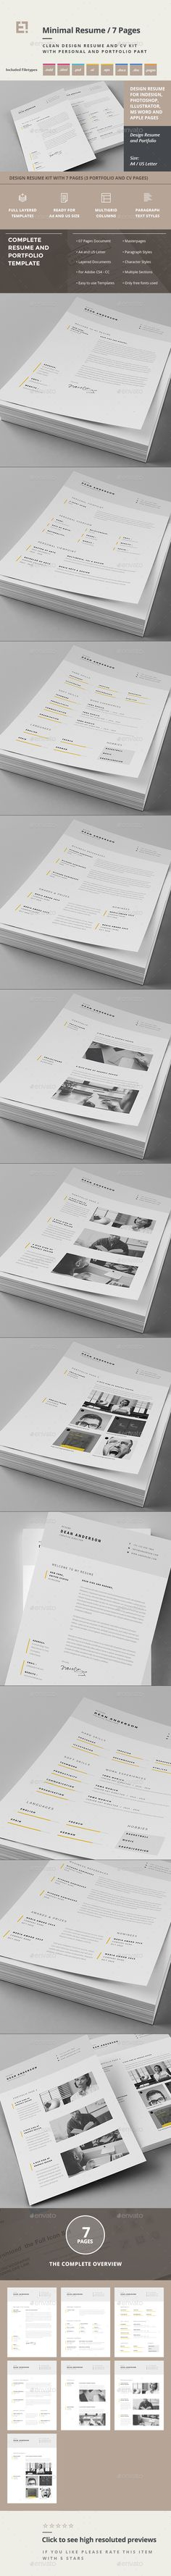 Resume Template Download%0A Hired  Swiss Style  Page Resume   CV Template  Resumes Stationery   Best  Printable Resume Templates   Pinterest   Swiss style  Resume cv and Cv  template